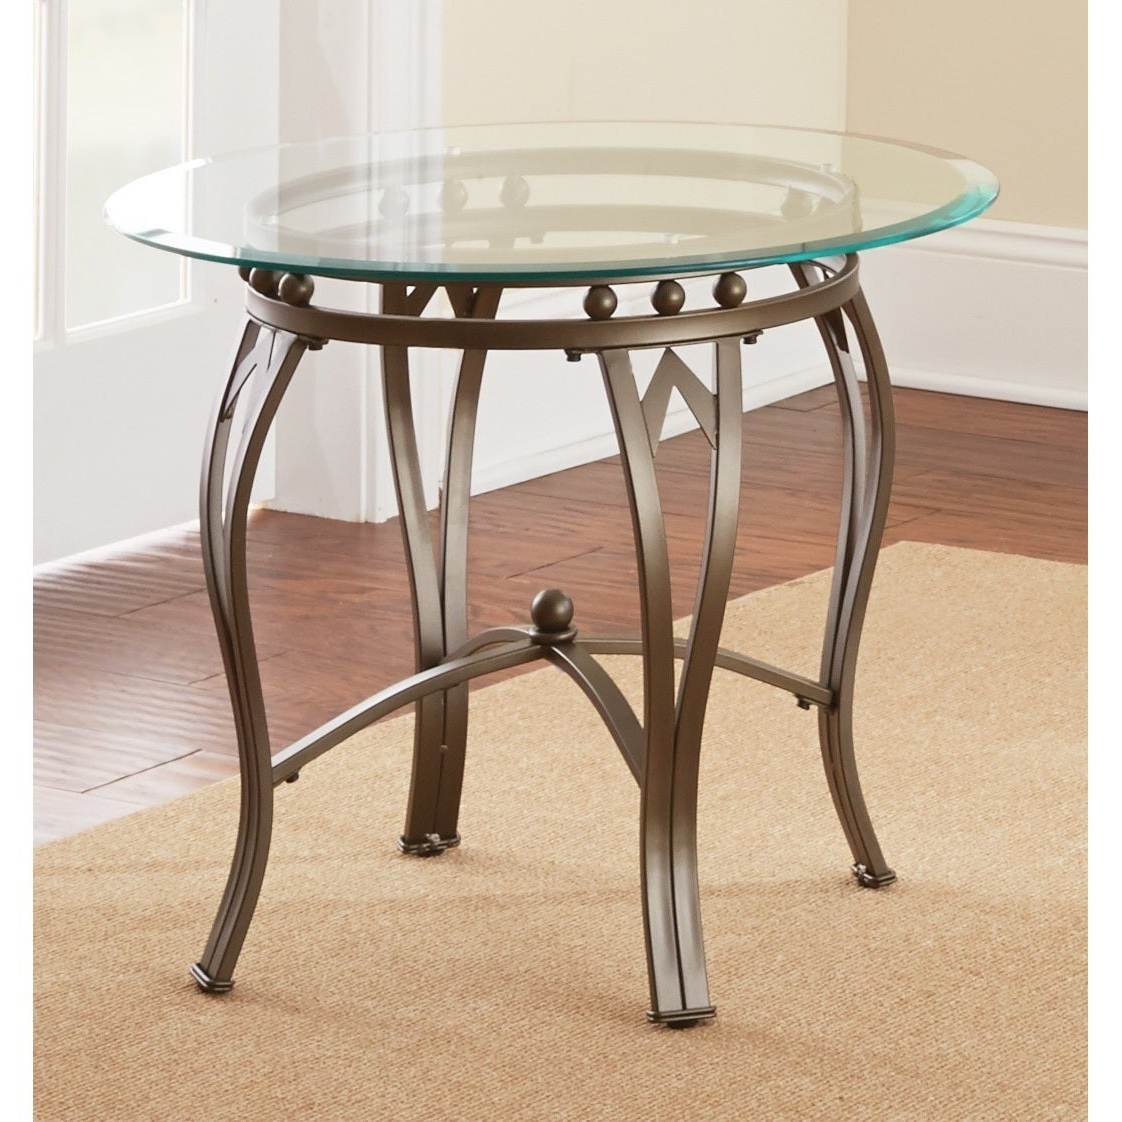 Copper Grove Woodend Glass Top Round End Table In Well Known Copper Grove Woodend Glass Top Oval Coffee Tables (View 6 of 20)